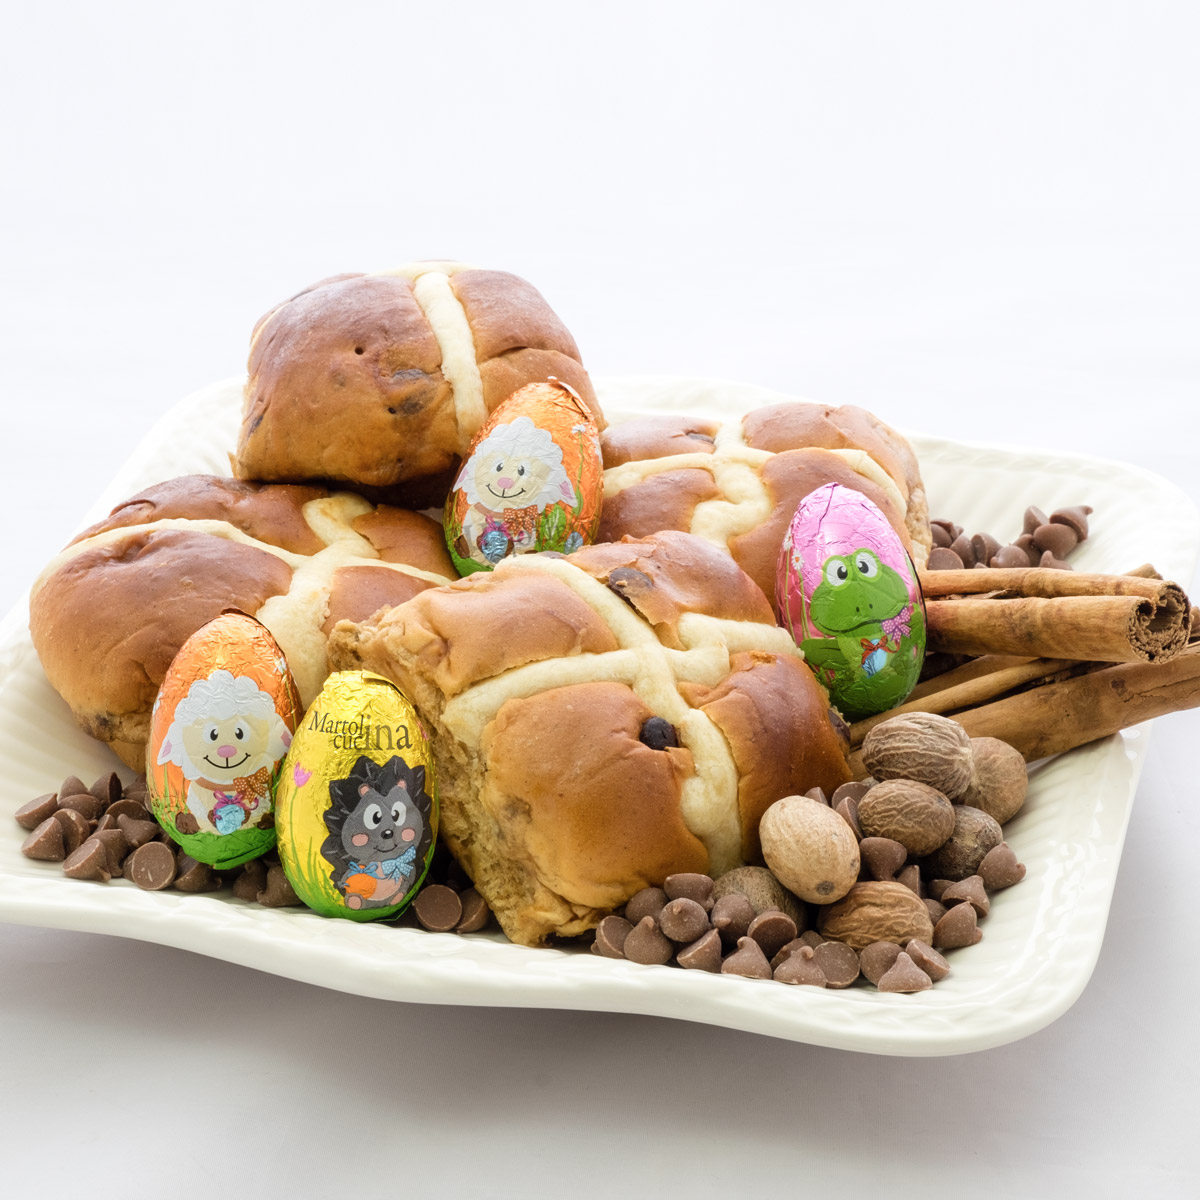 Hot cross buns con cioccolato